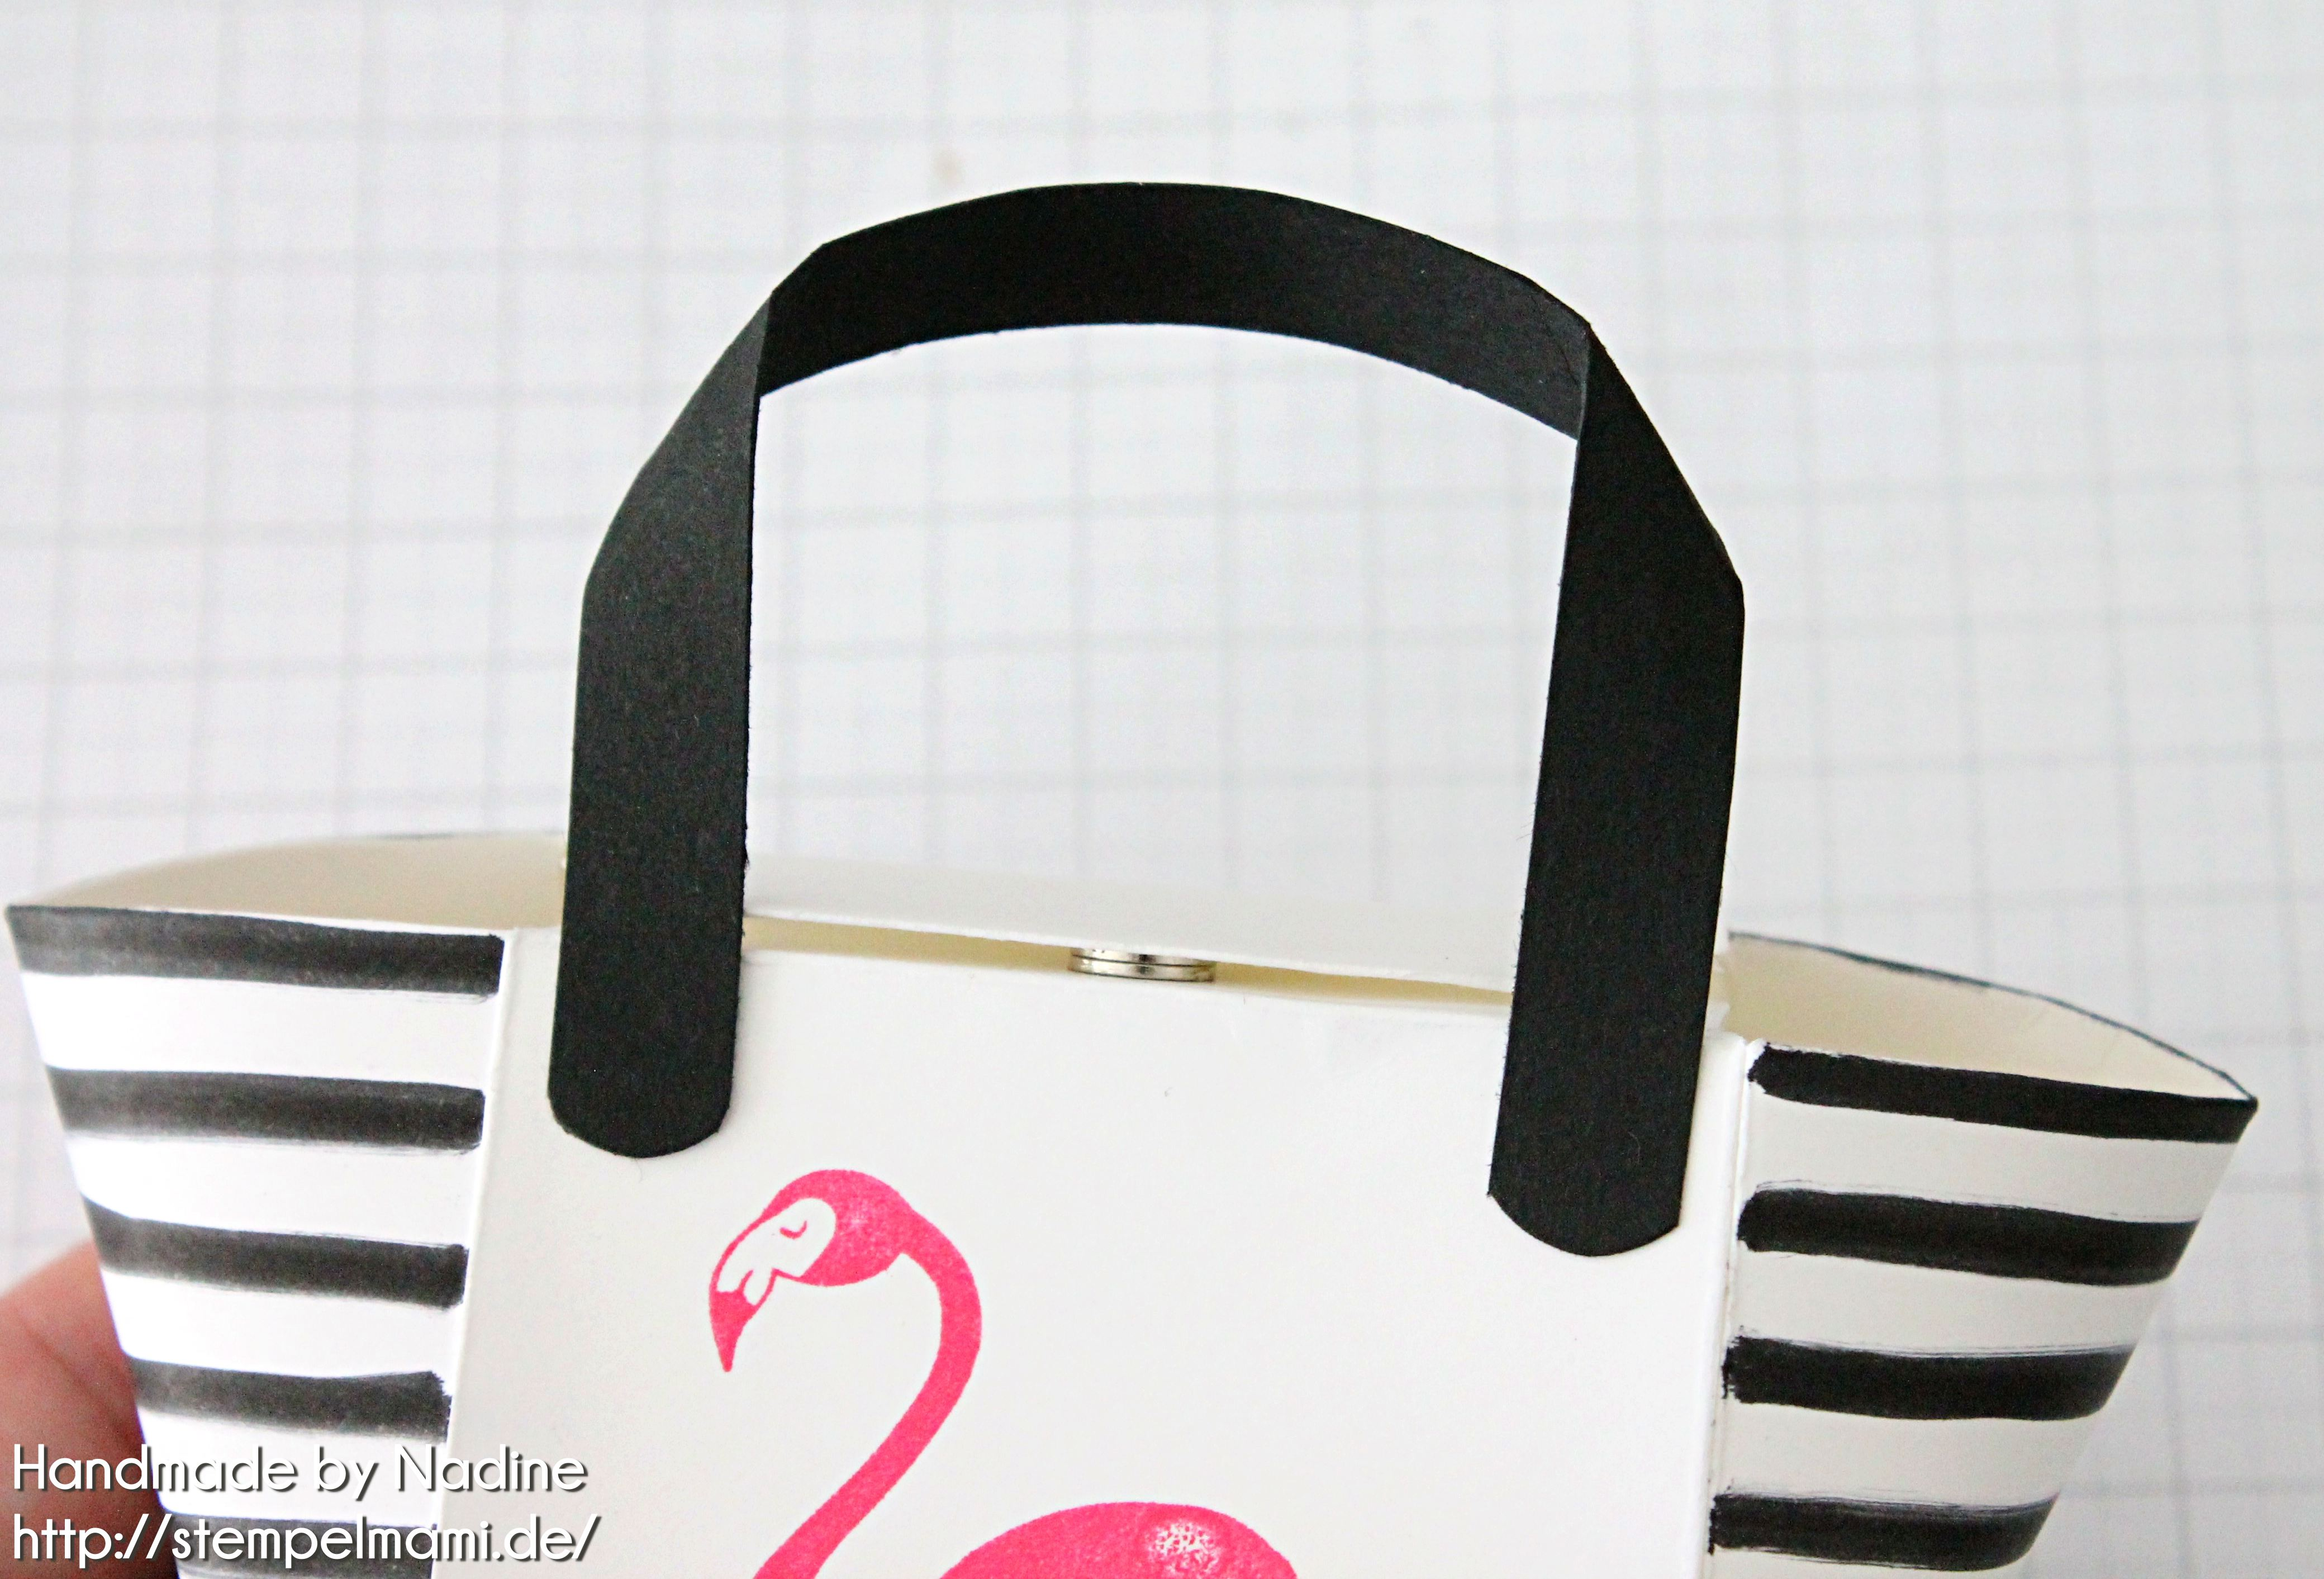 stampin up anleitung tutorial handtasche handbag box stempelmami envelope punch board 27